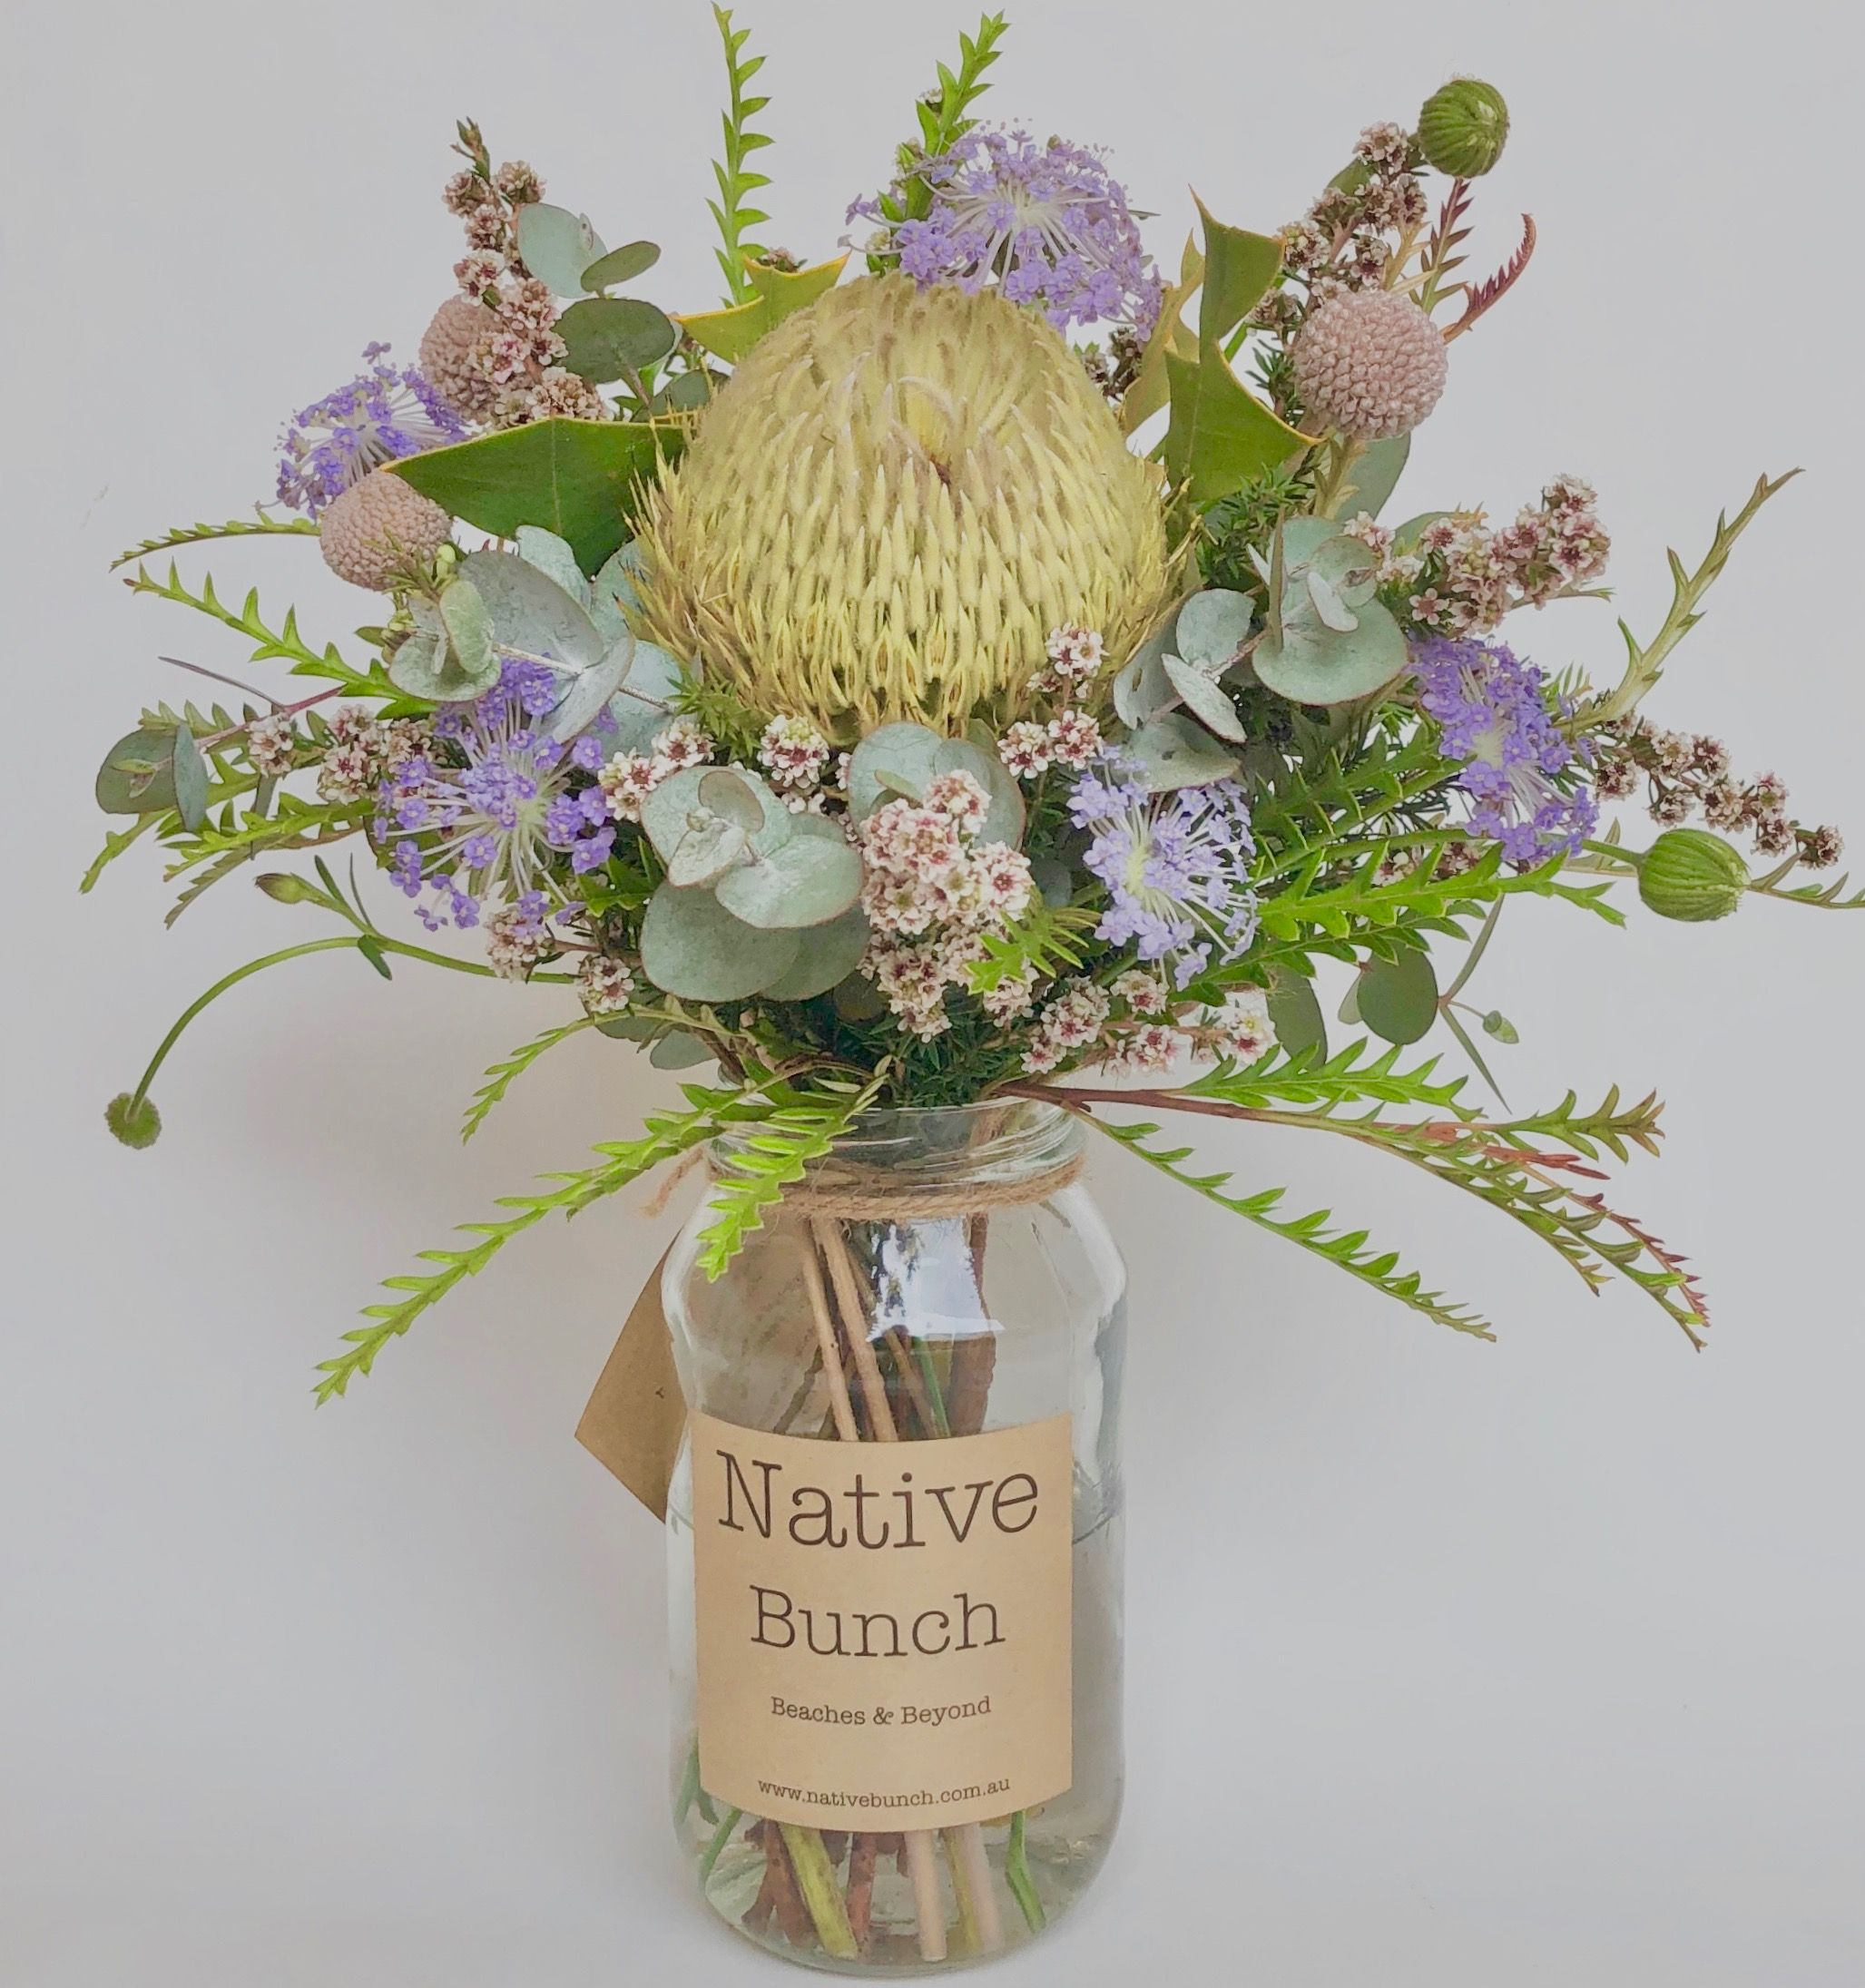 All Australian Native flower posy by Native Bunch